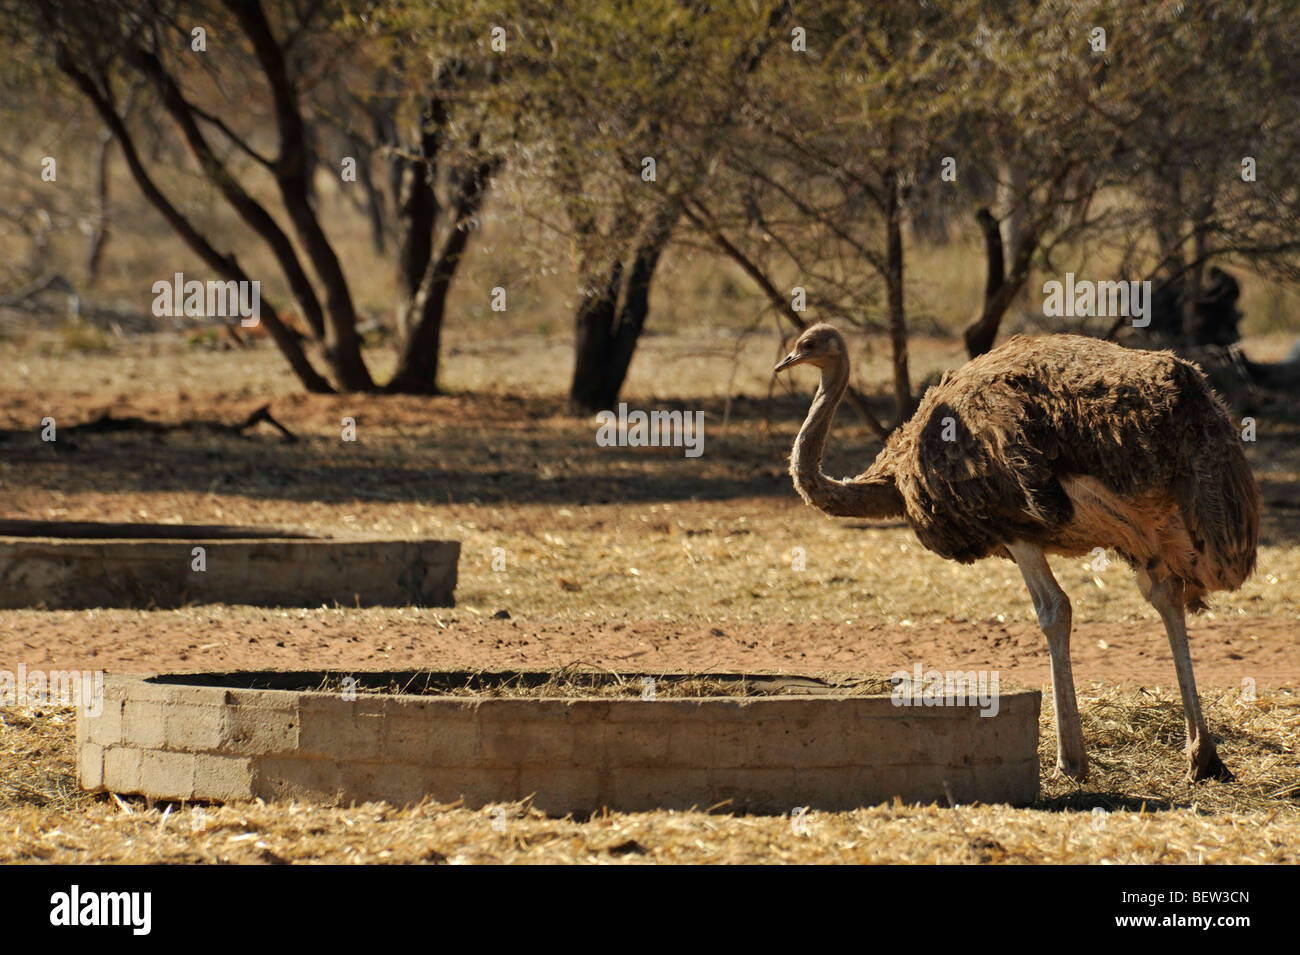 Limpopo, South Africa, female, Ostrich, Struthio camelus, standing at feeding crib, game farming, ranching, animal Stock Photo